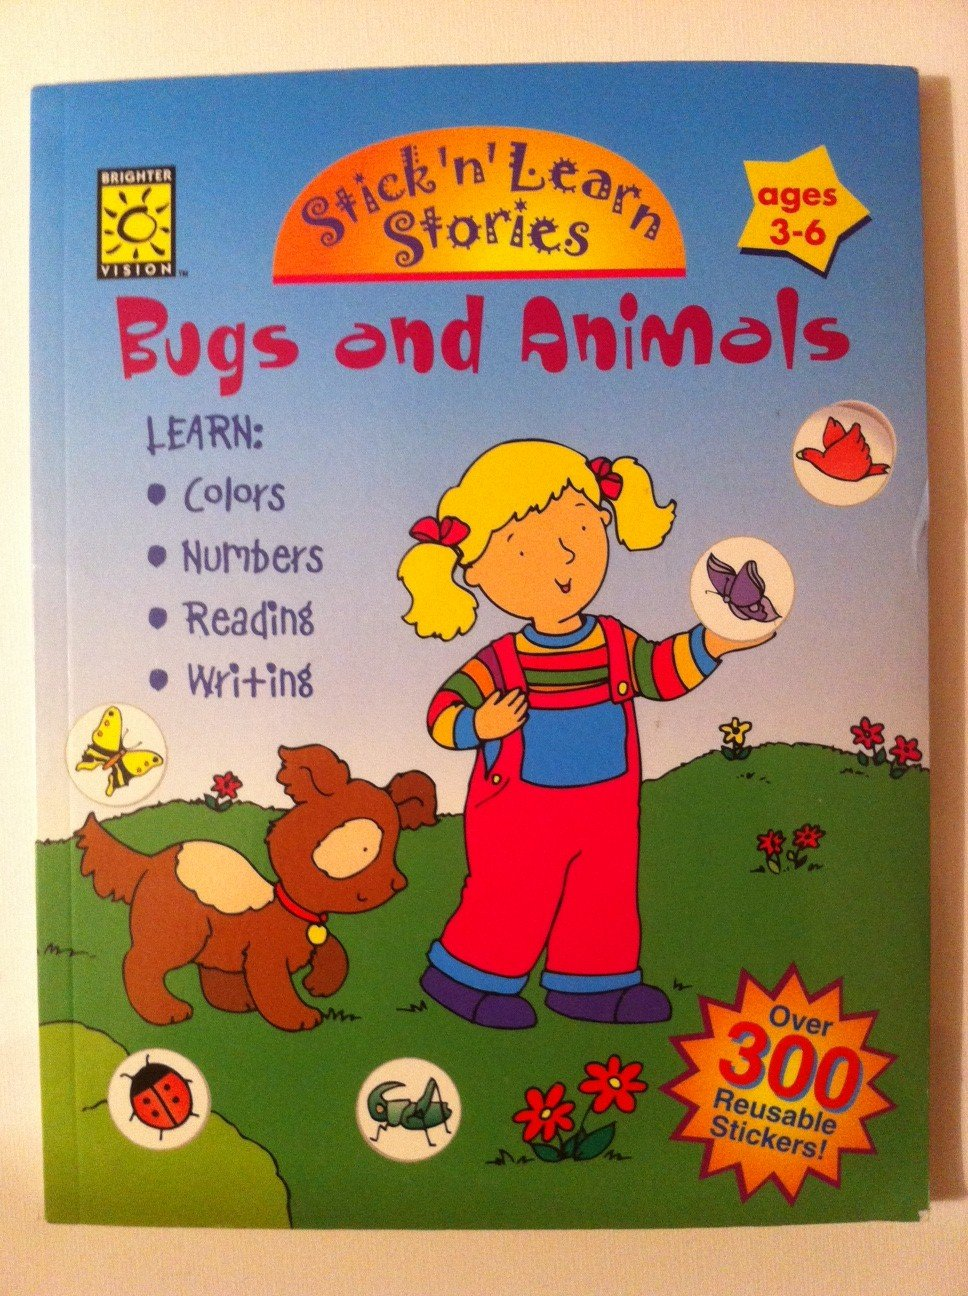 Bugs and Animals (Stick 'N Learn) PDF